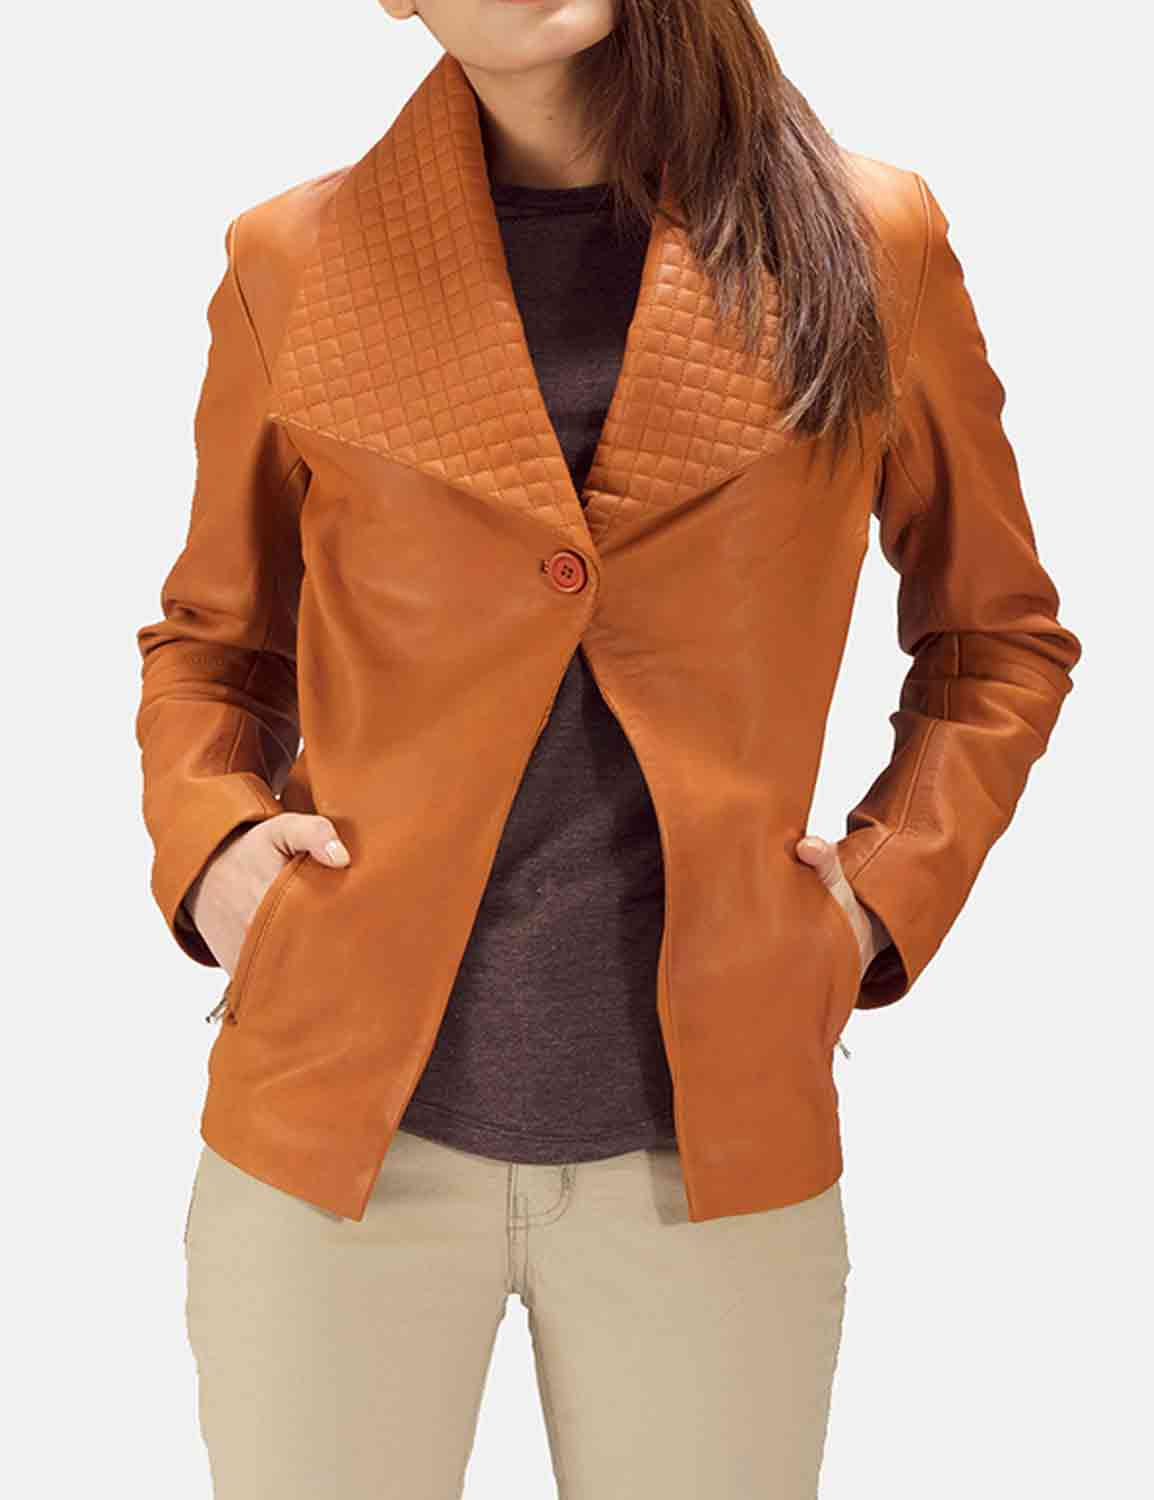 Women looking to sport a manly and rough look can consider wearing western leather blazers for women. The popular ones are black and brown.